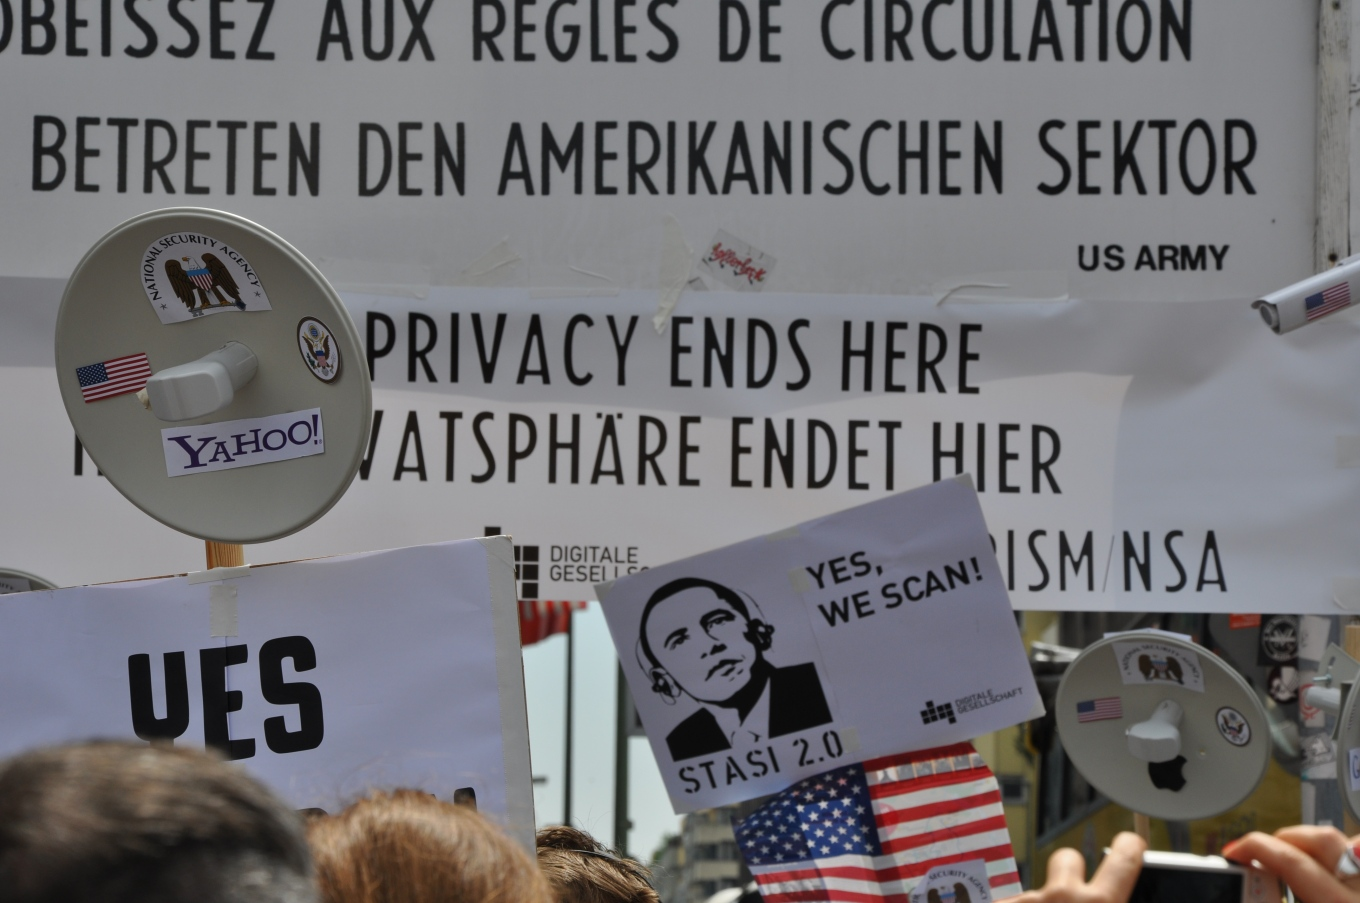 DigiGes_PRISM_Yes_we_scan_-_Demo_am_Checkpoint_Charlie_June_2013